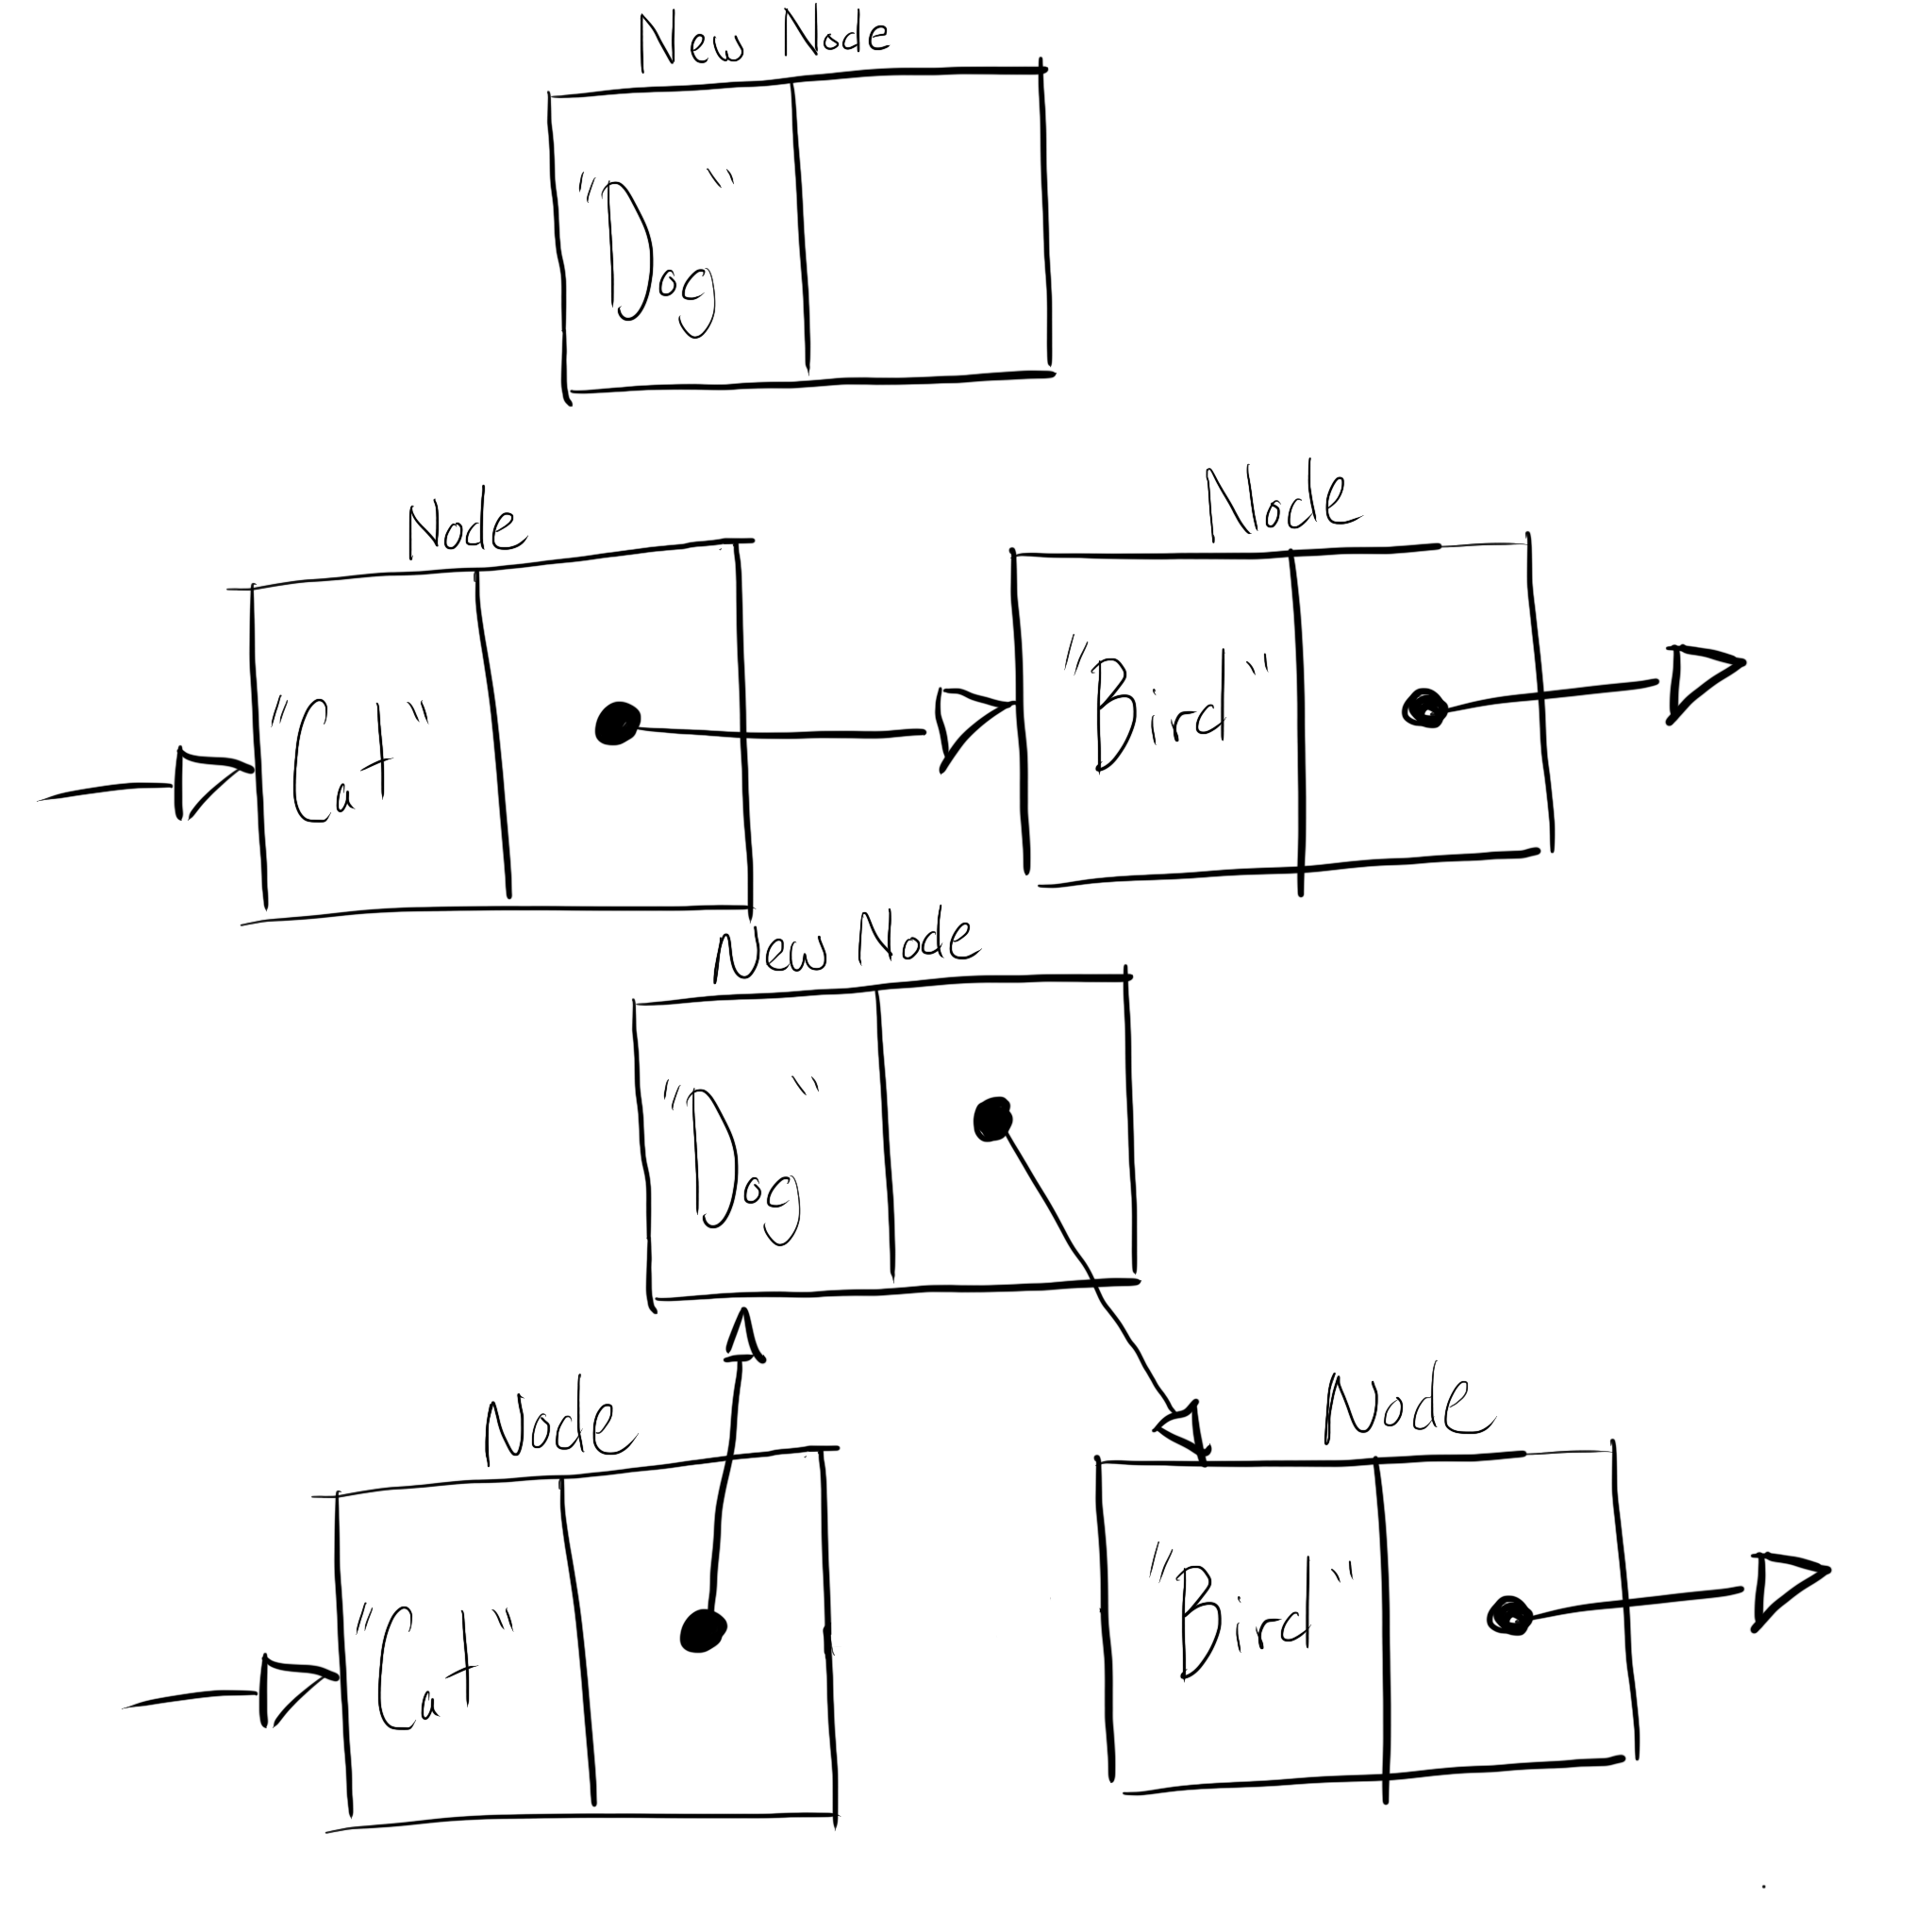 Diagram that demonstrates how linked lists allocates memory for new linked list nodes